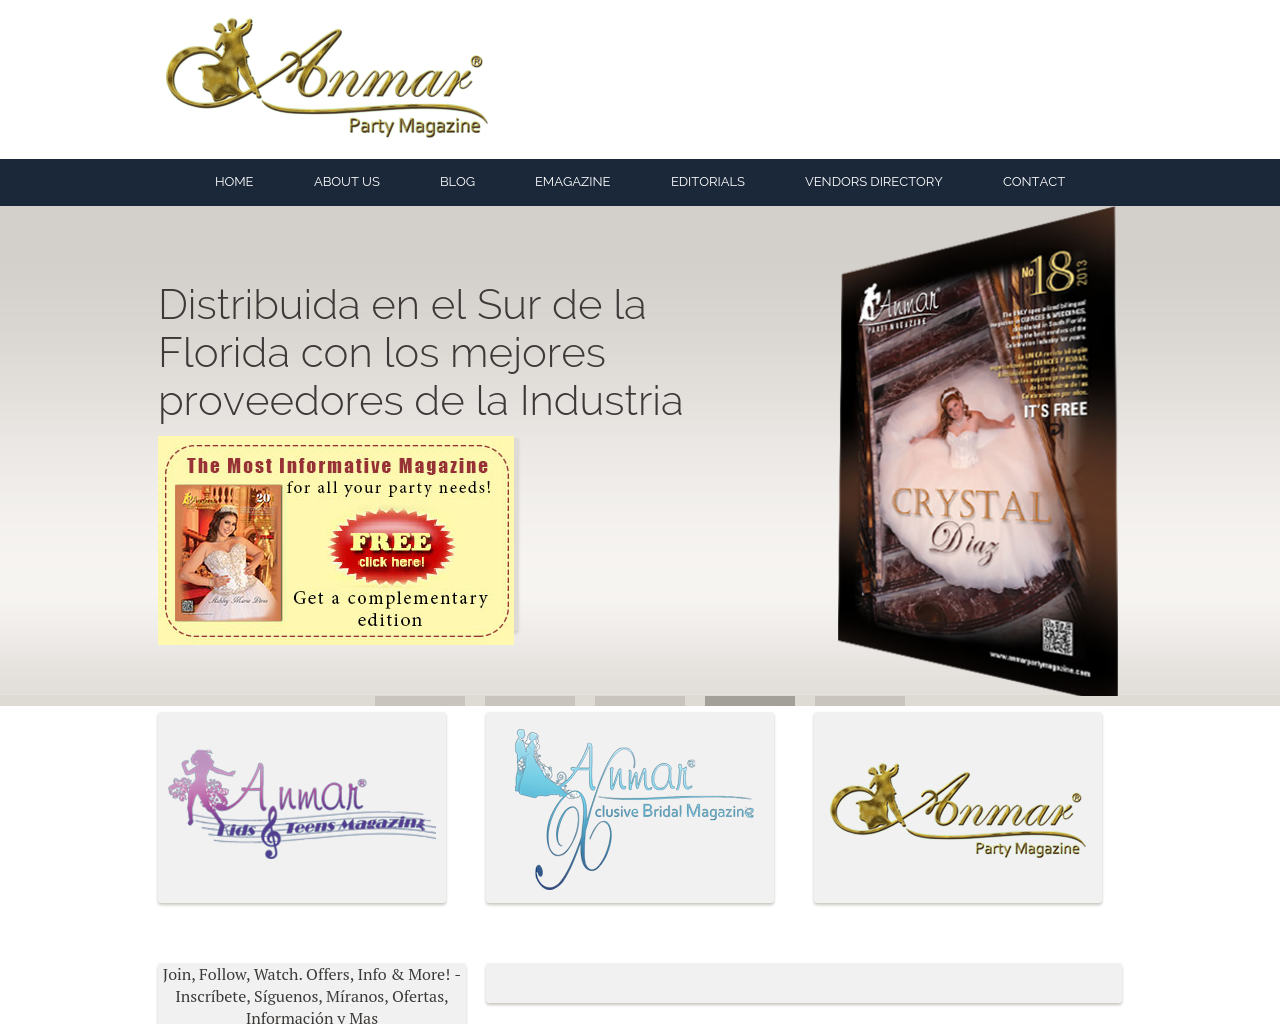 Anmar-PARTY-MAGAZINE-Advertising-Reviews-Pricing